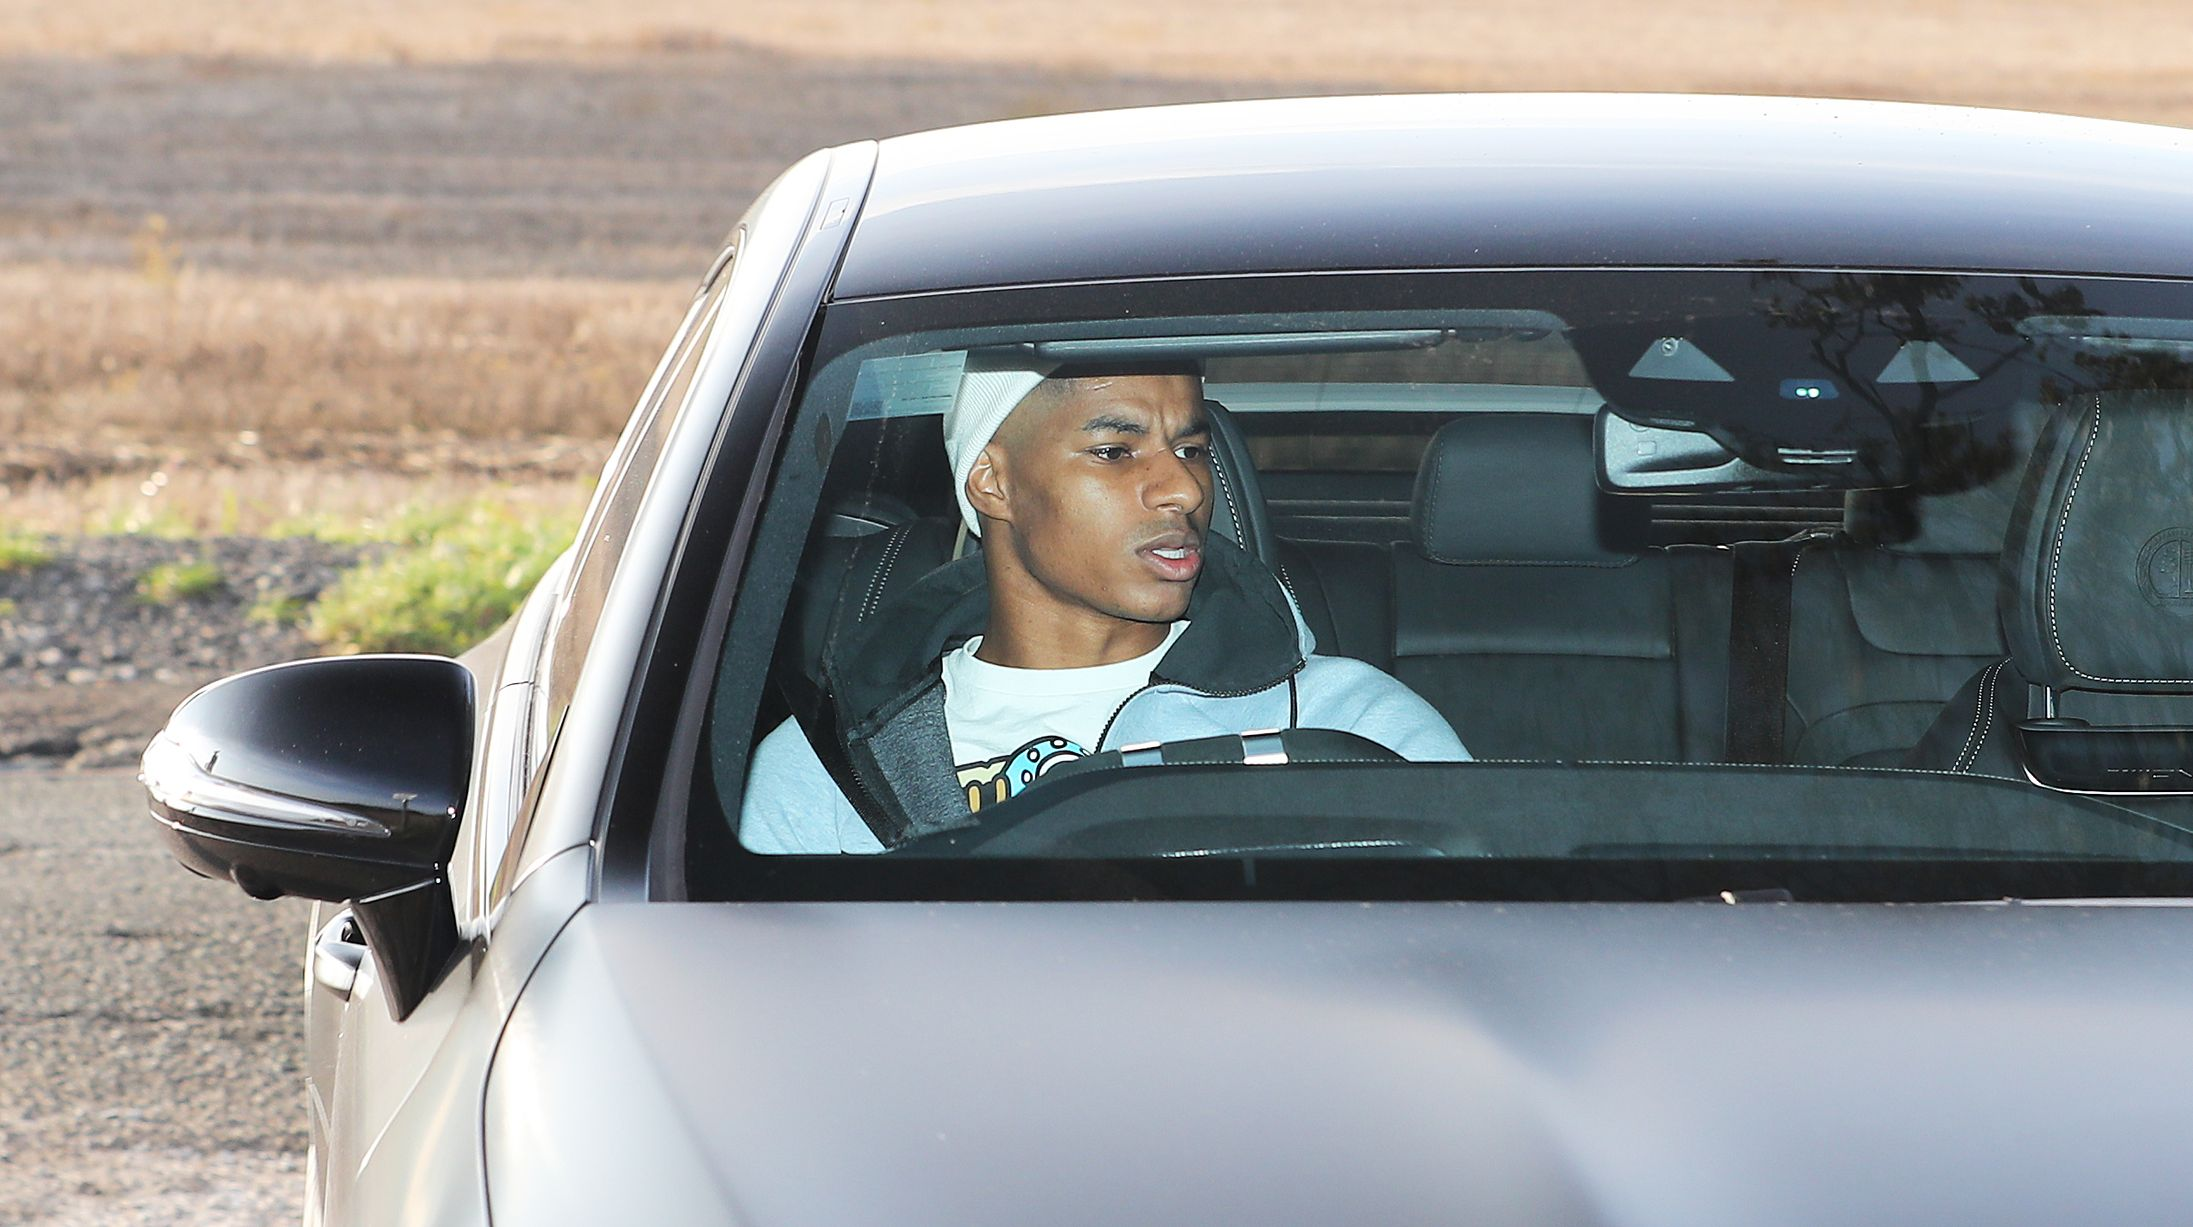 Manchester United players arrive for training after Chelsea win - Bóng Đá